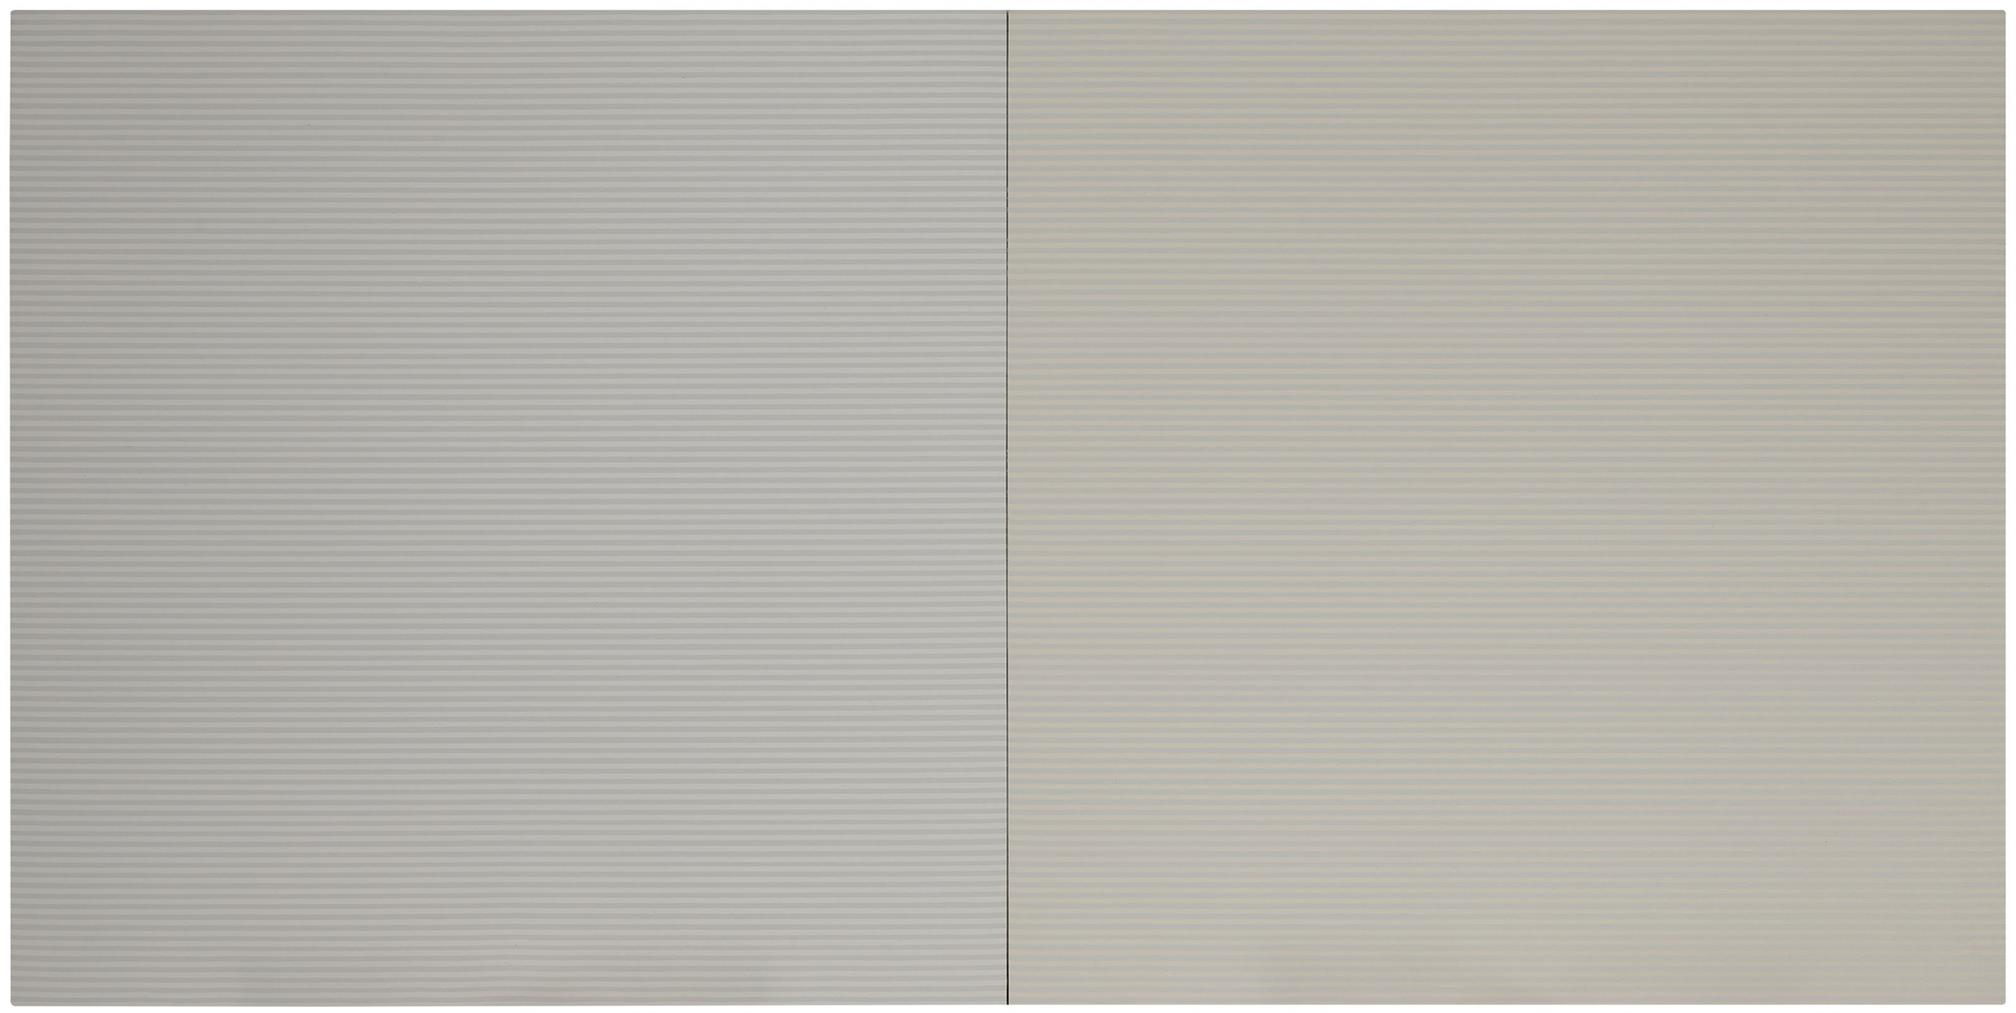 Sean Scully-Horizontals: Grey Diptych #1-1976